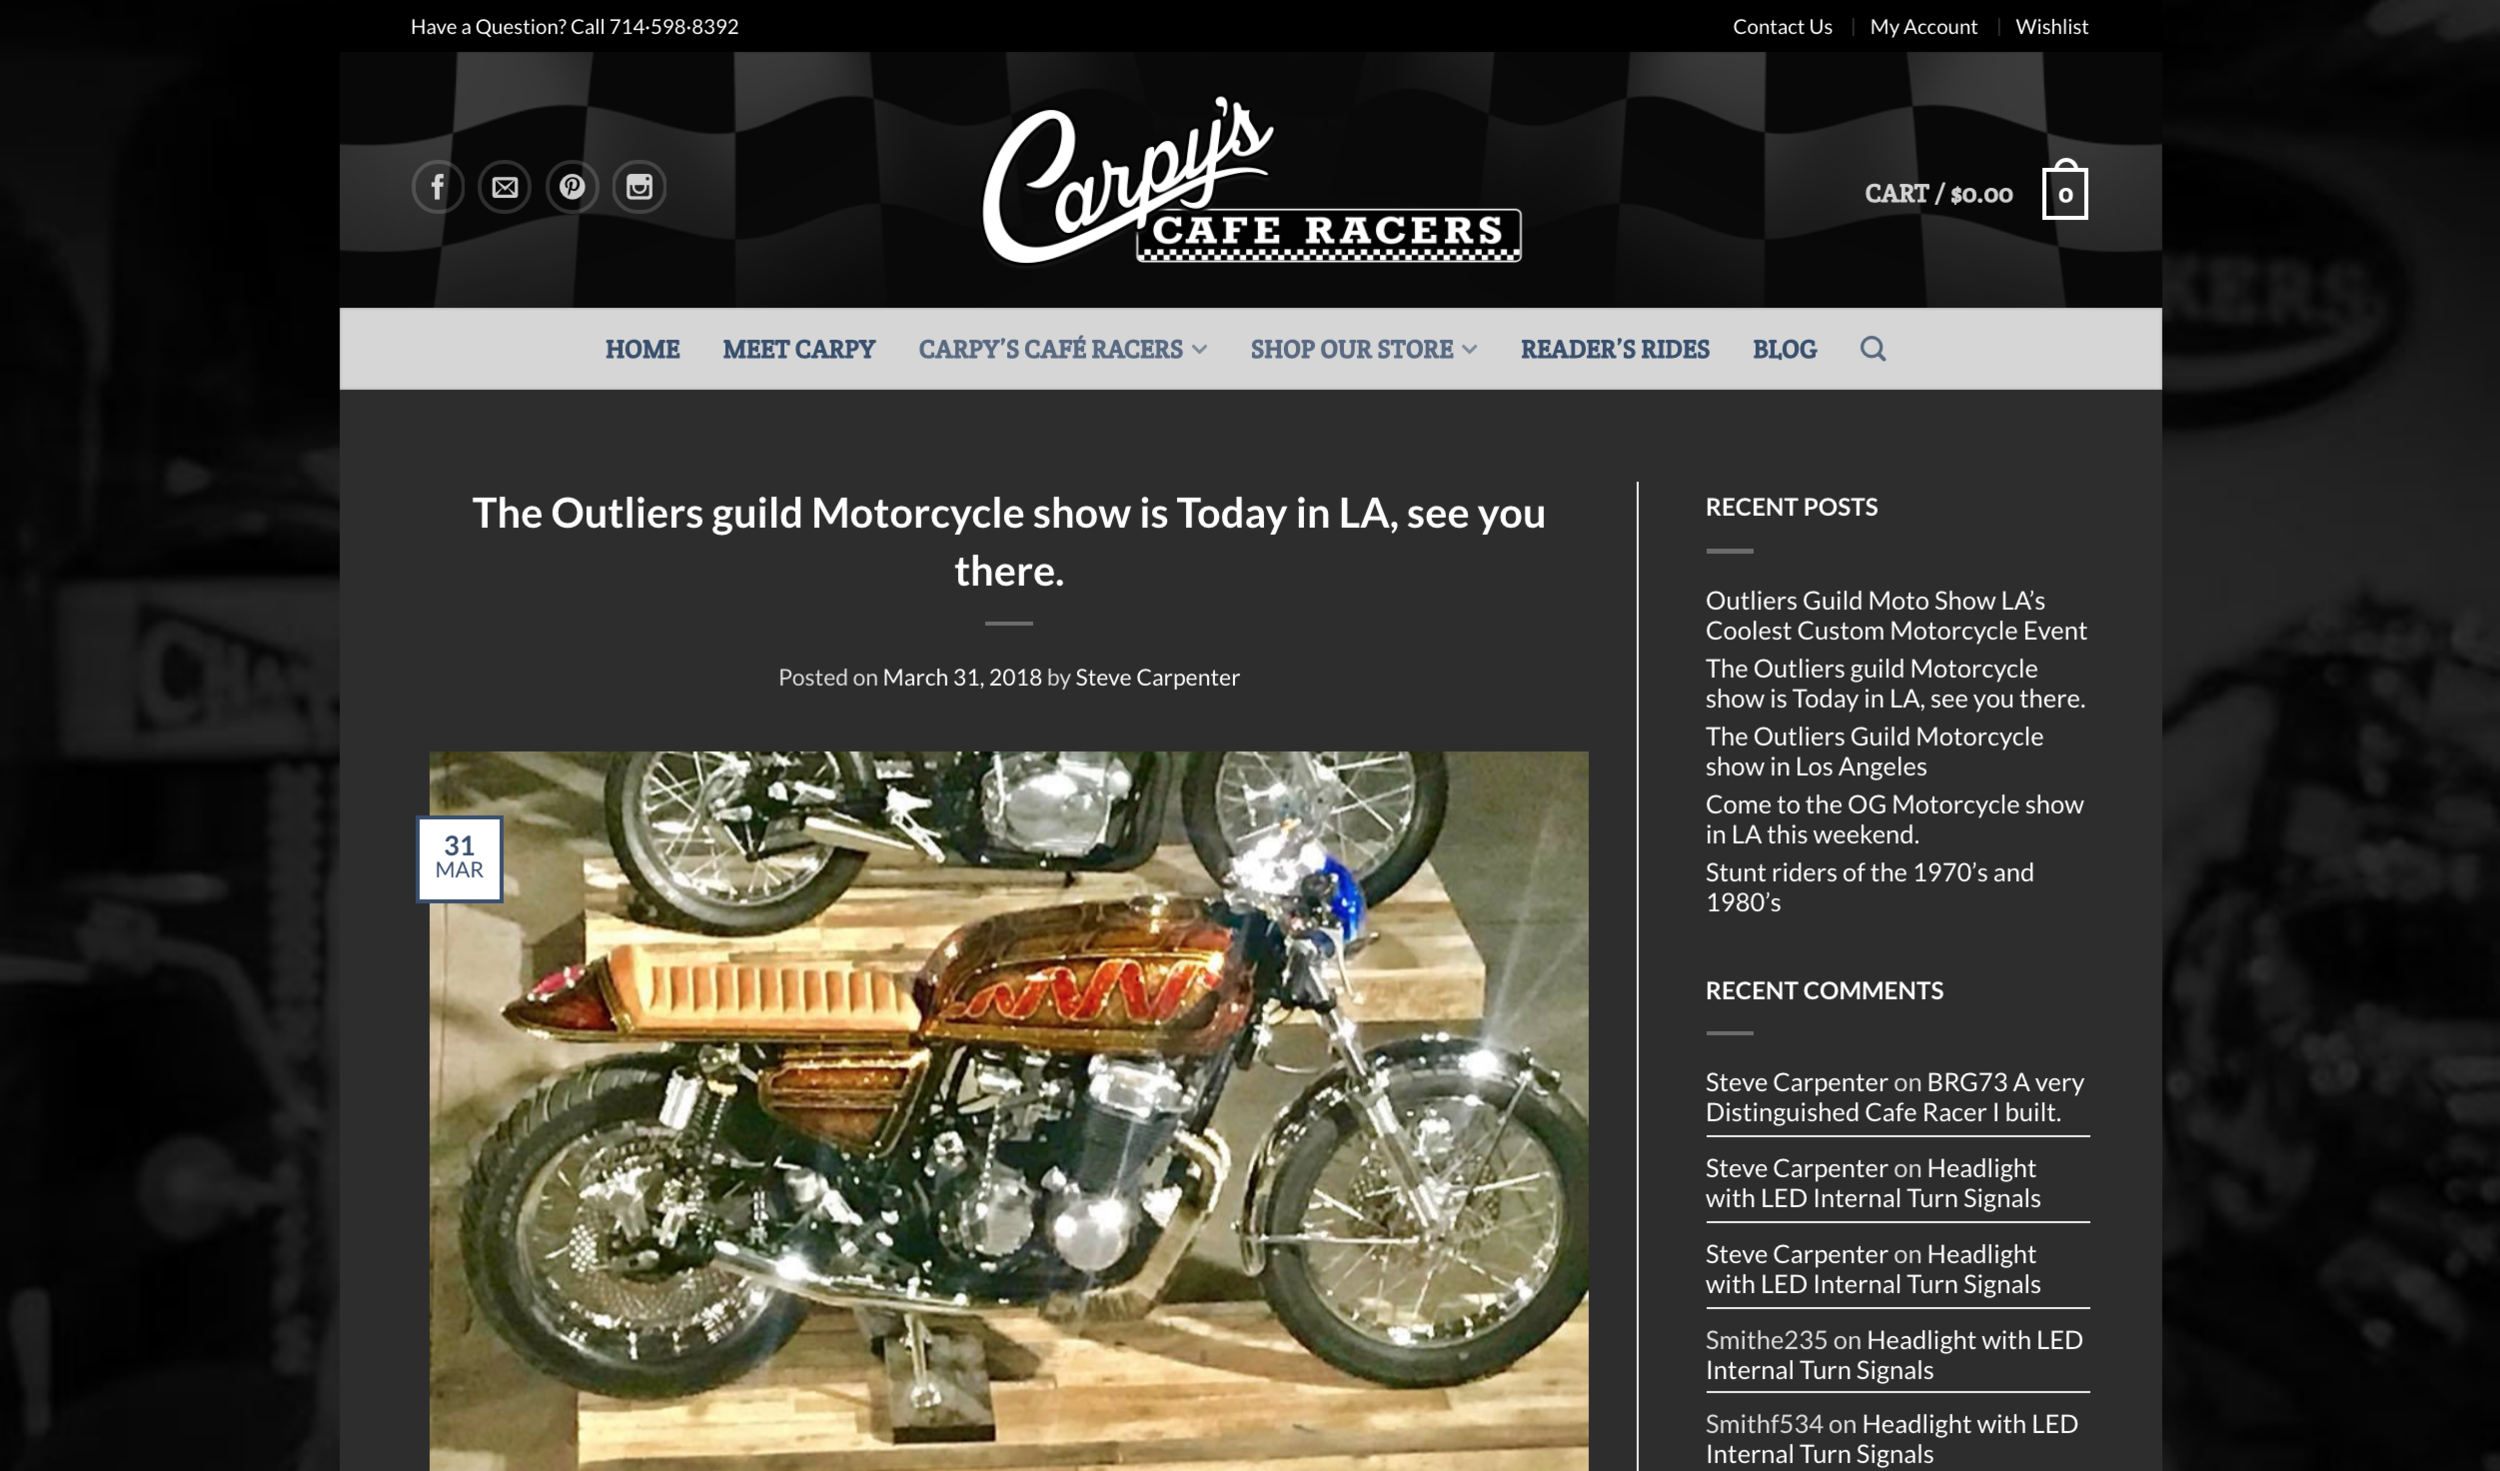 Featured on Carpy's Cafe Racers